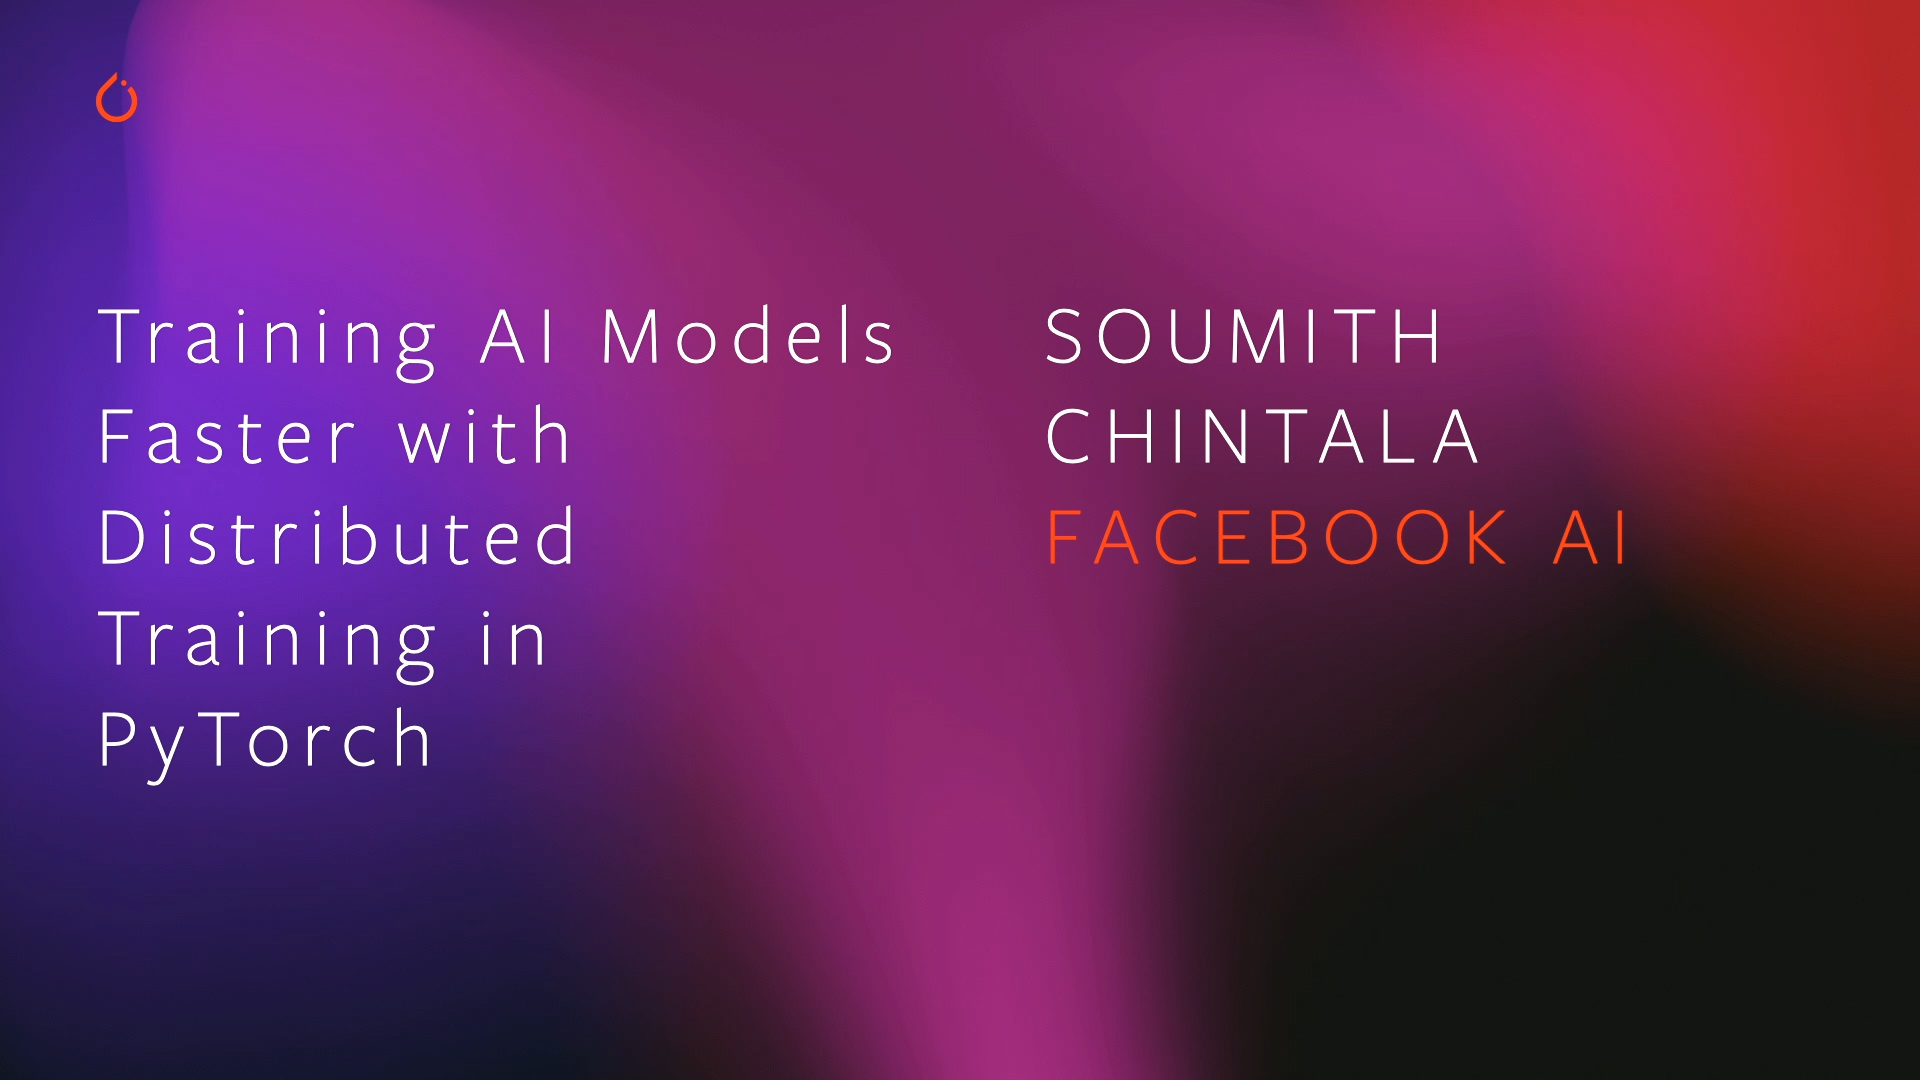 GTC Silicon Valley-2019: Training AI Models Faster With